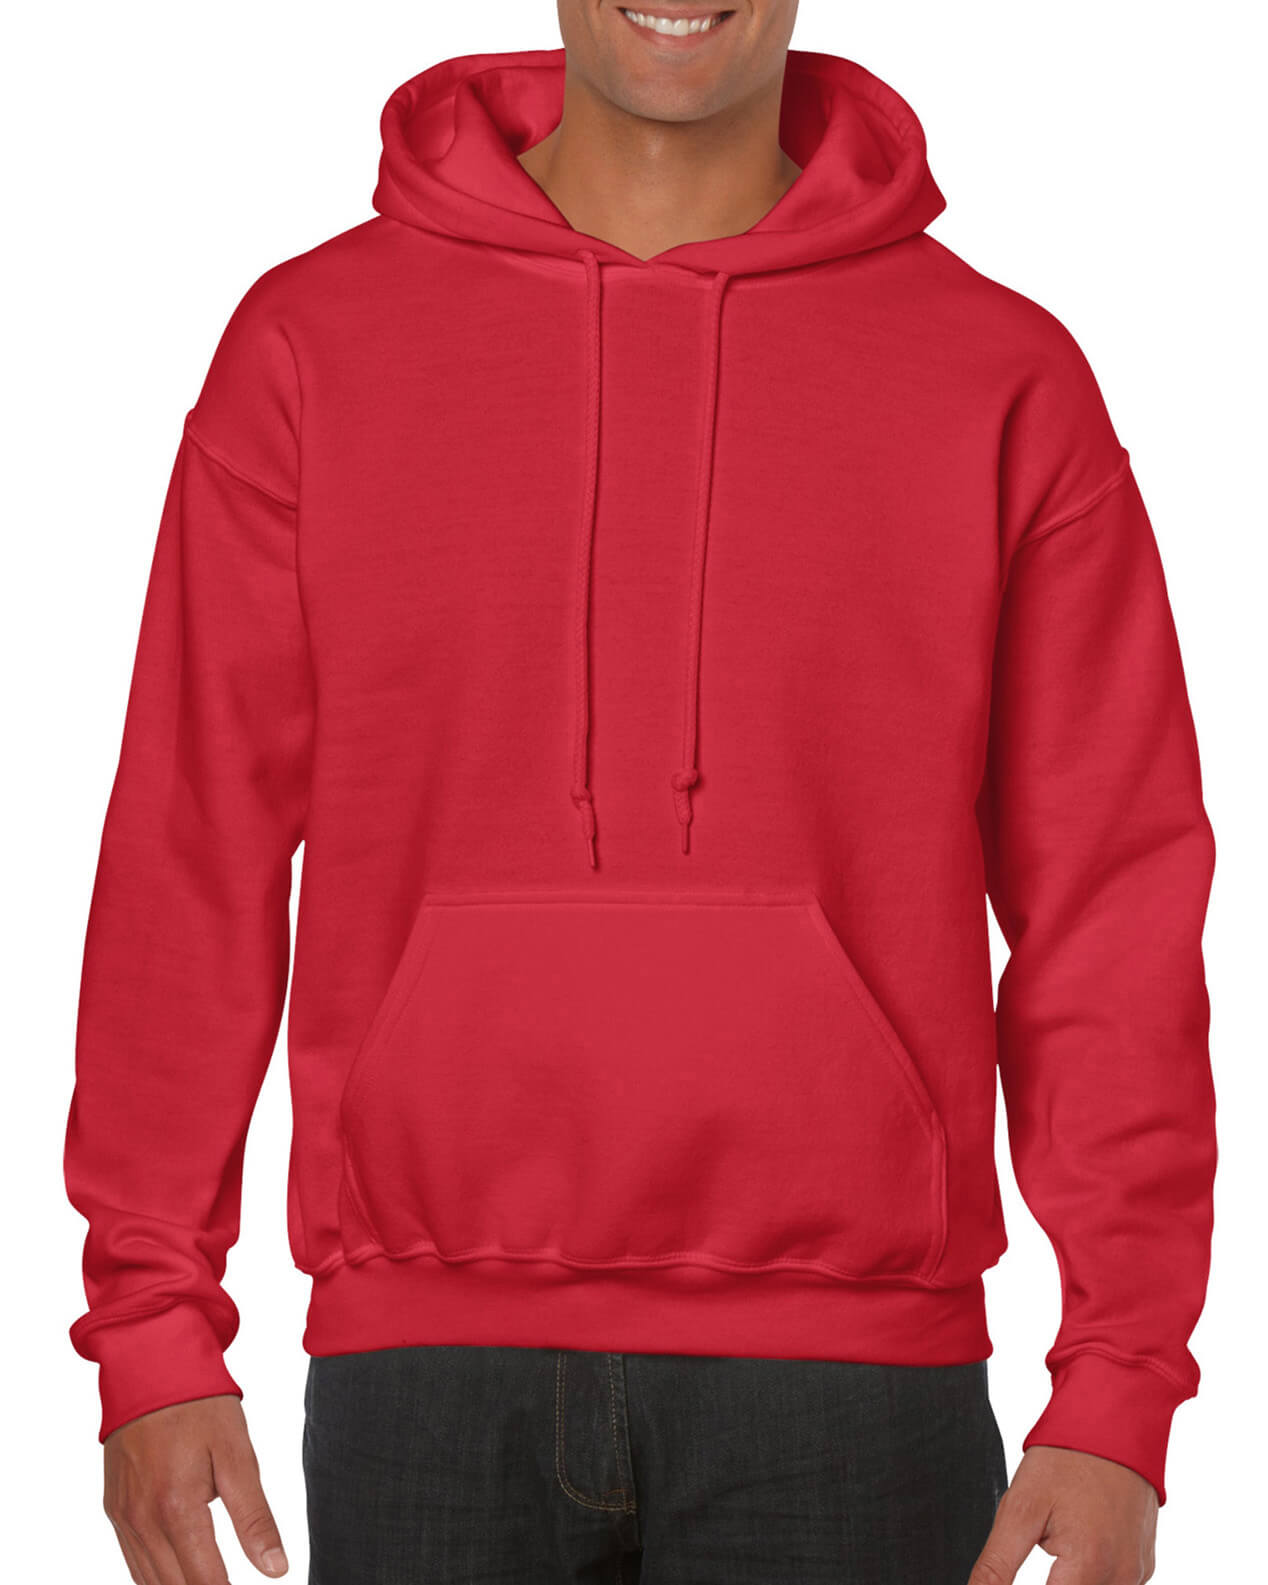 ADULT 50/50 HOODED SWEAT-Red